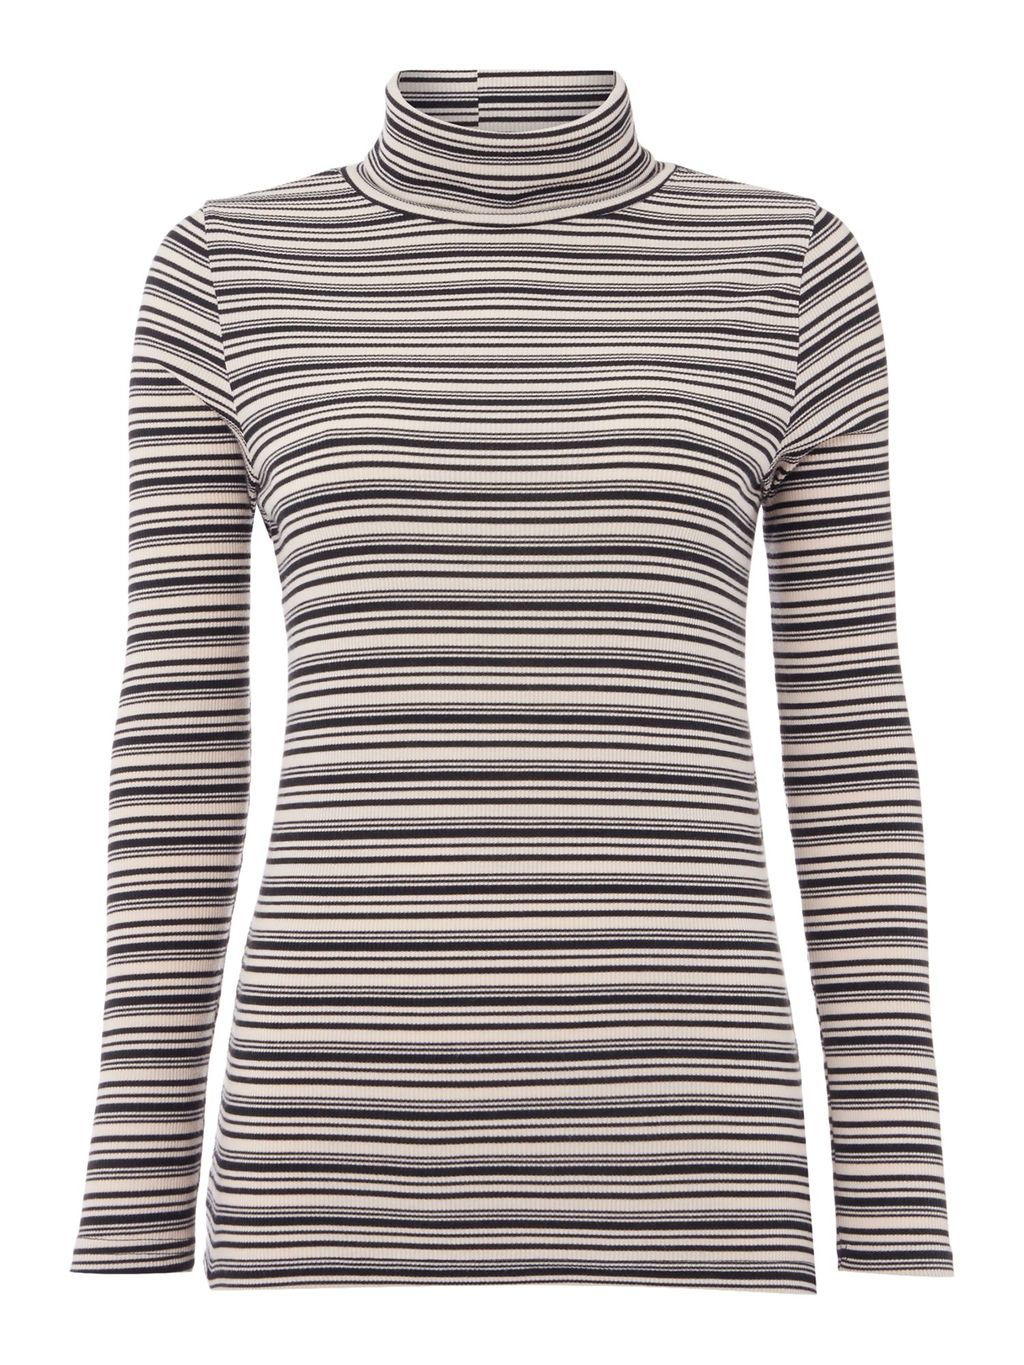 Stripe Longsleeve Rollneck Top, Black/Brown - pattern: horizontal stripes; neckline: roll neck; predominant colour: black; occasions: casual, creative work; length: standard; style: top; fibres: polyester/polyamide - stretch; fit: body skimming; sleeve length: long sleeve; sleeve style: standard; pattern type: fabric; texture group: jersey - stretchy/drapey; pattern size: big & busy (top); multicoloured: multicoloured; season: s/s 2016